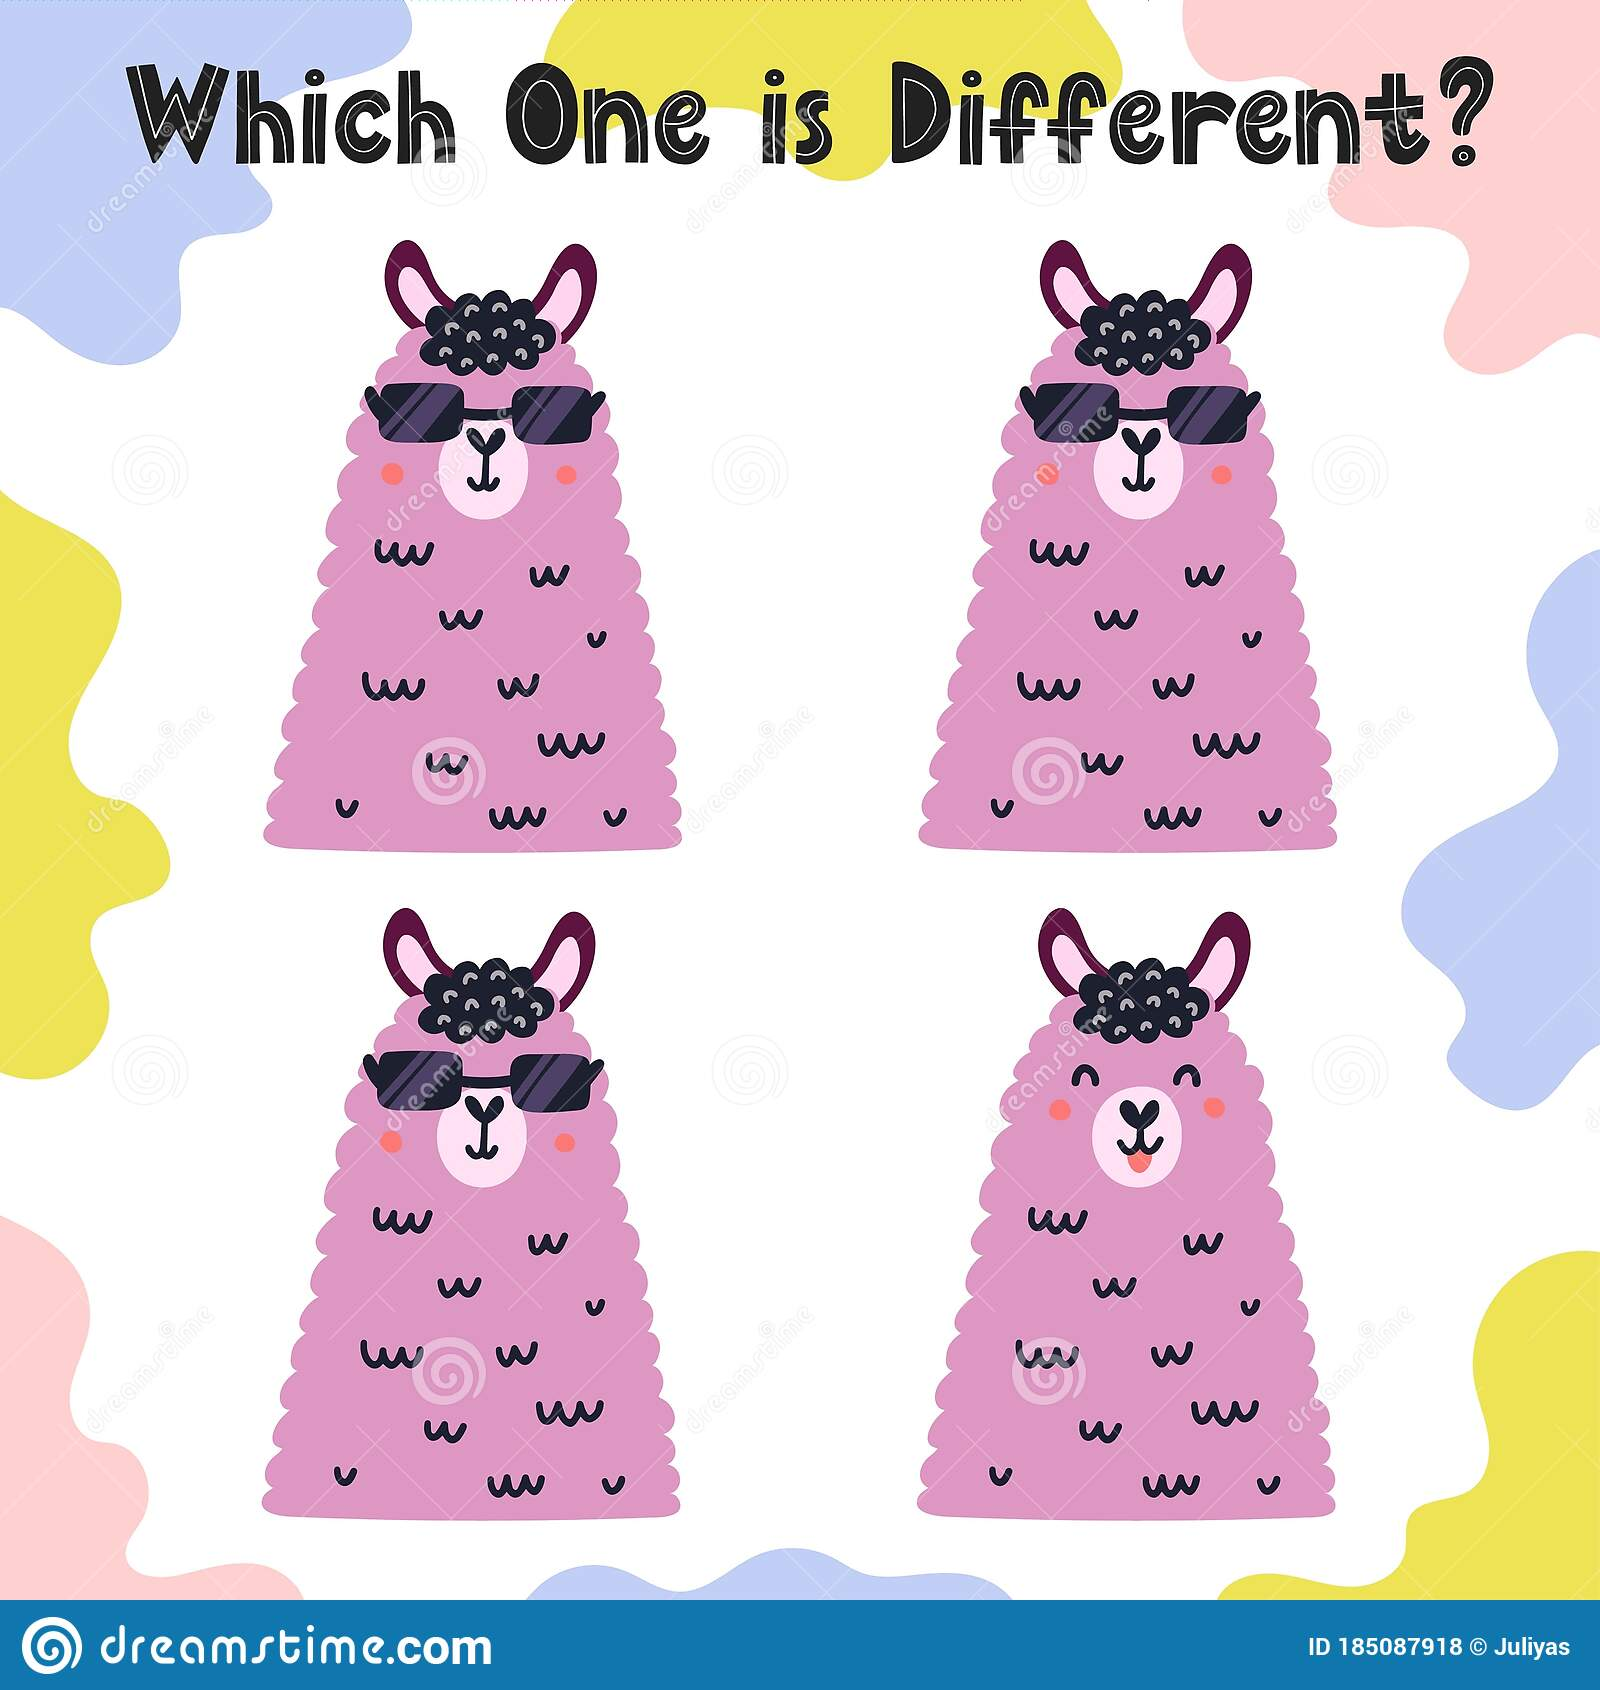 Which One Is Different Activity Page For Kids With Funny